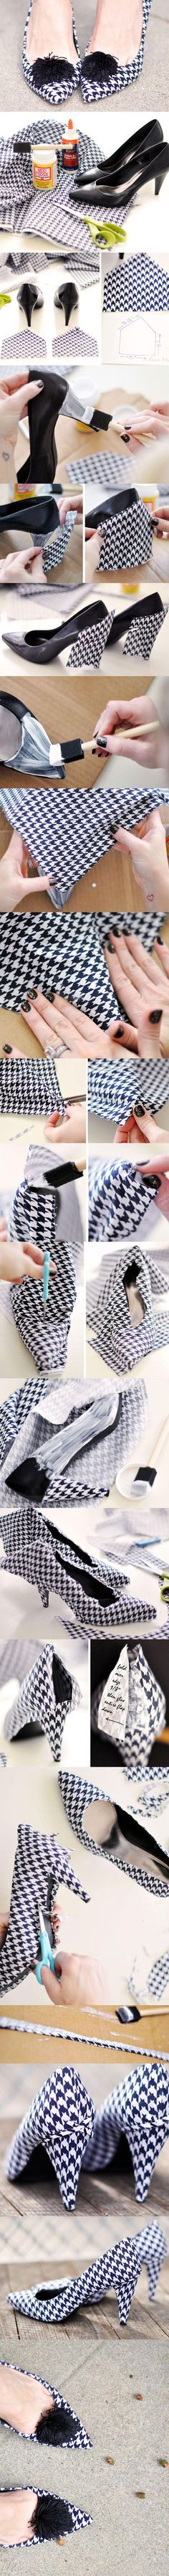 DIY Houndstooth Pumps